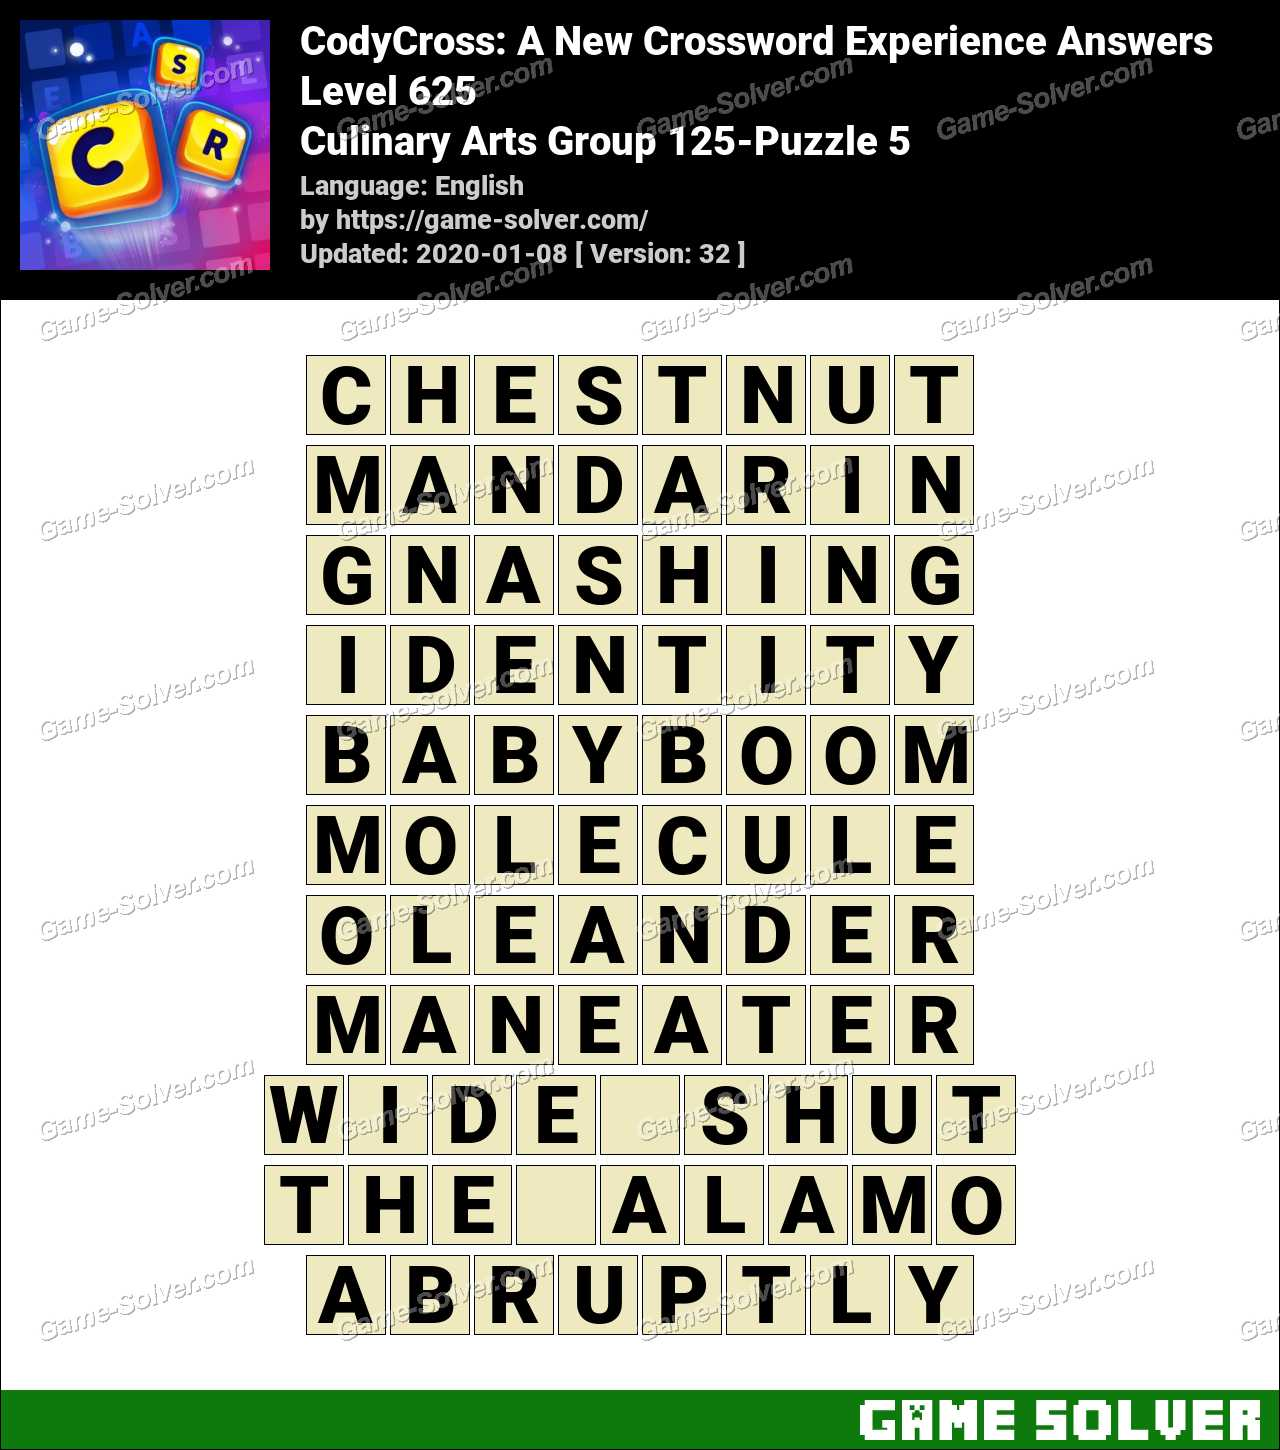 CodyCross Culinary Arts Group 125-Puzzle 5 Answers